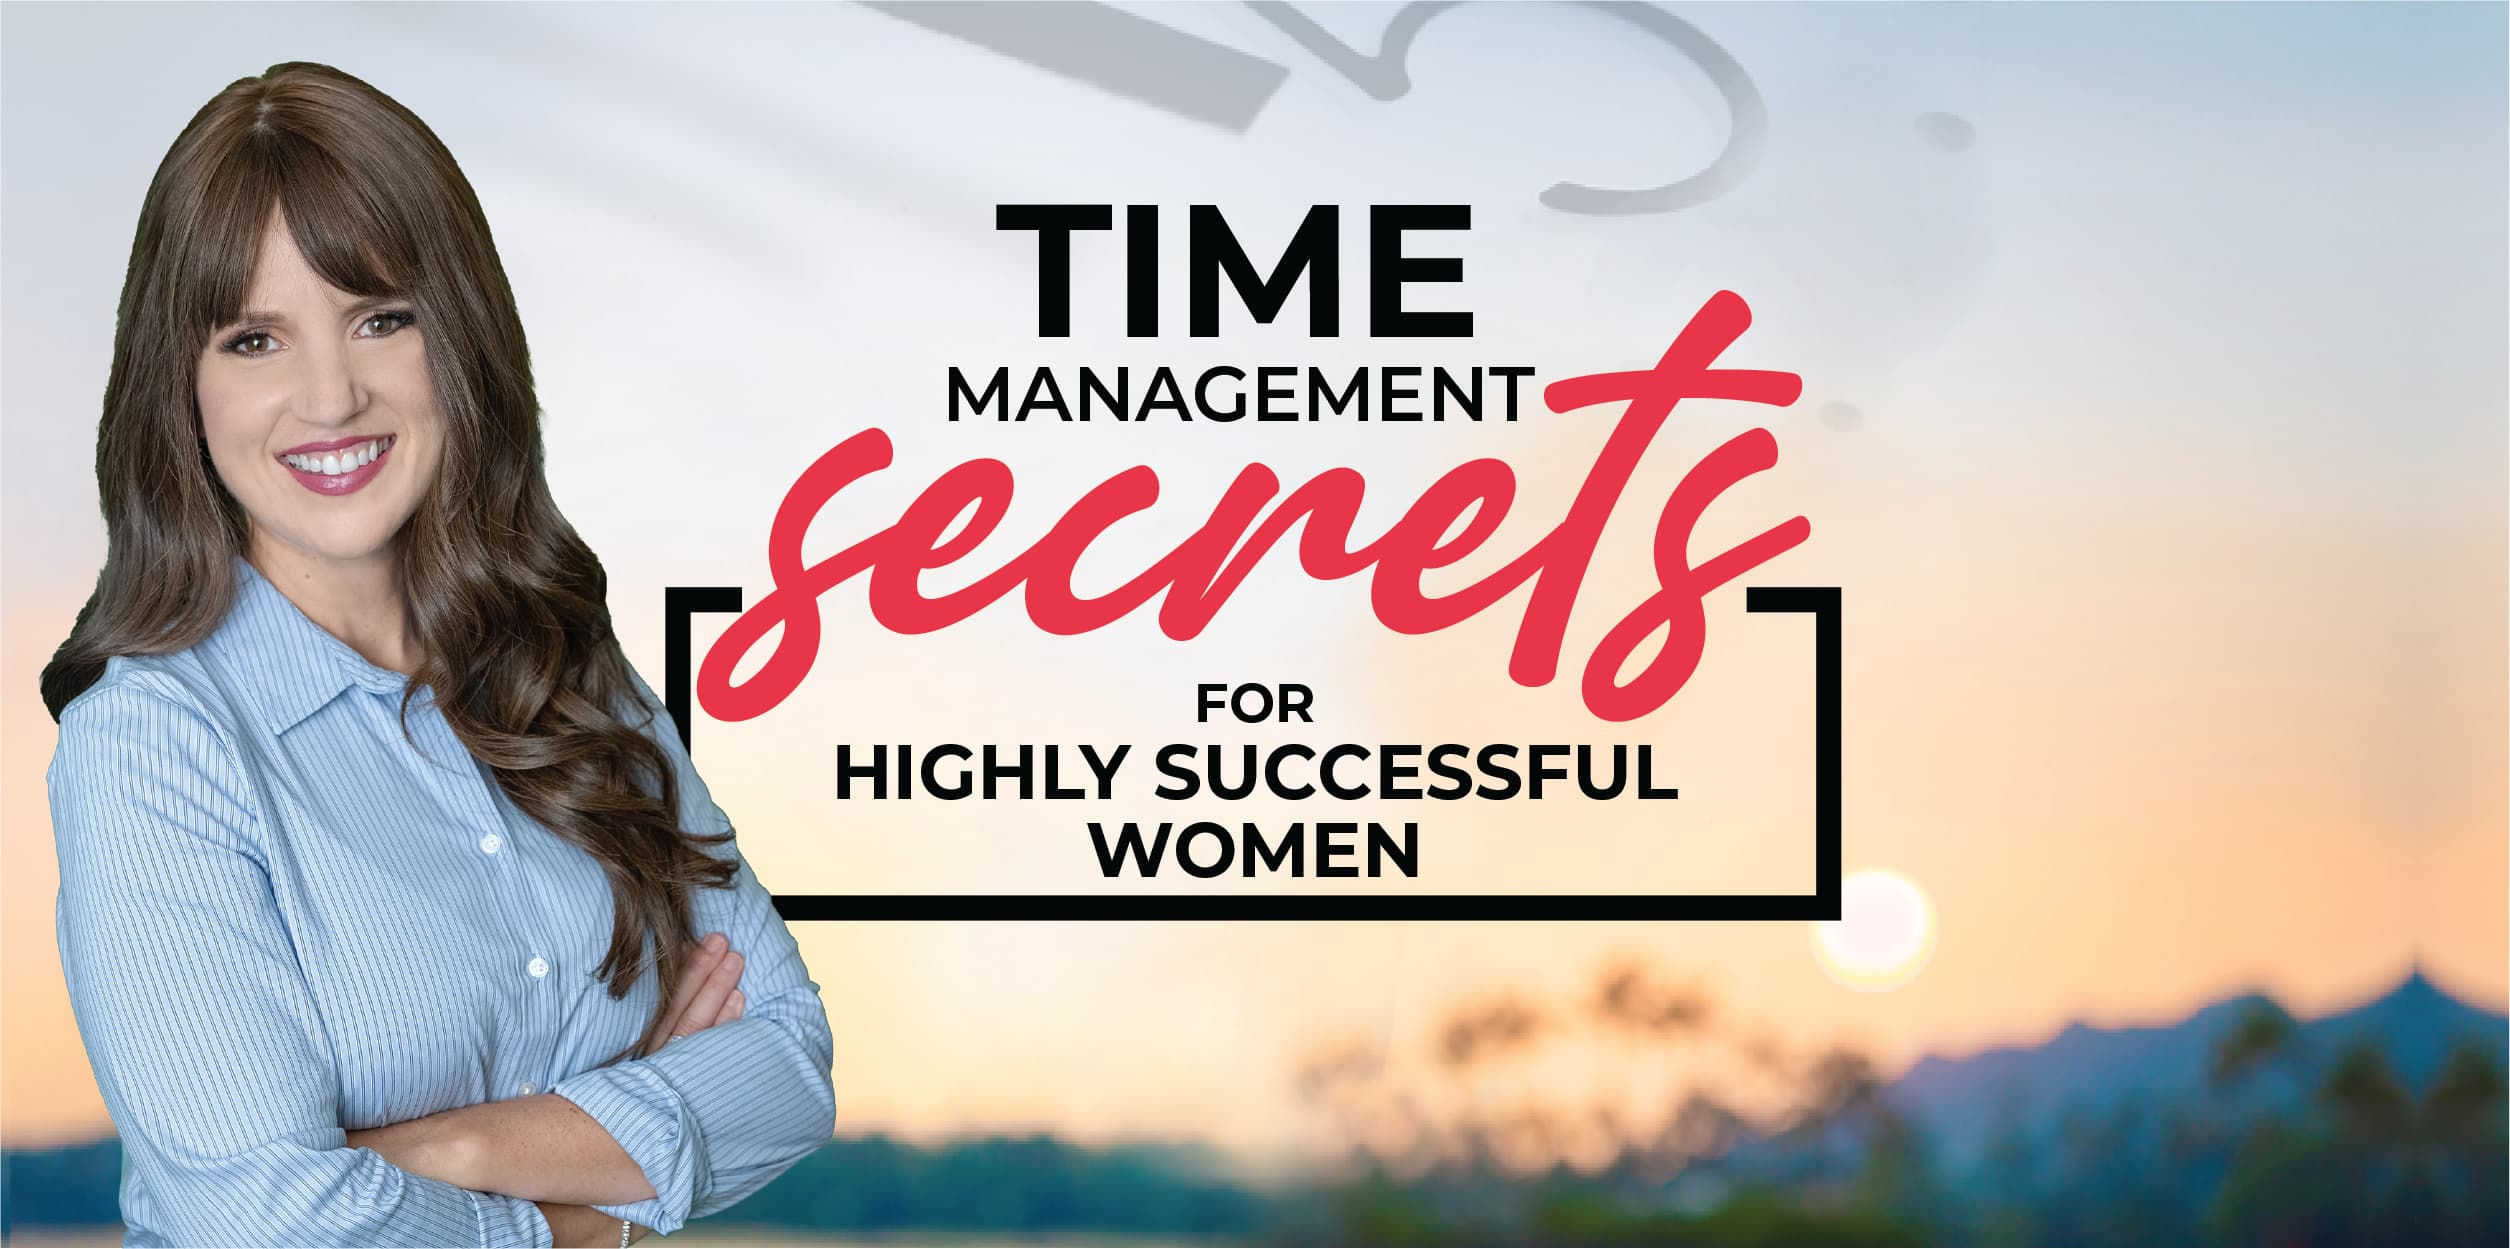 Time Management Secret For Highly successful women